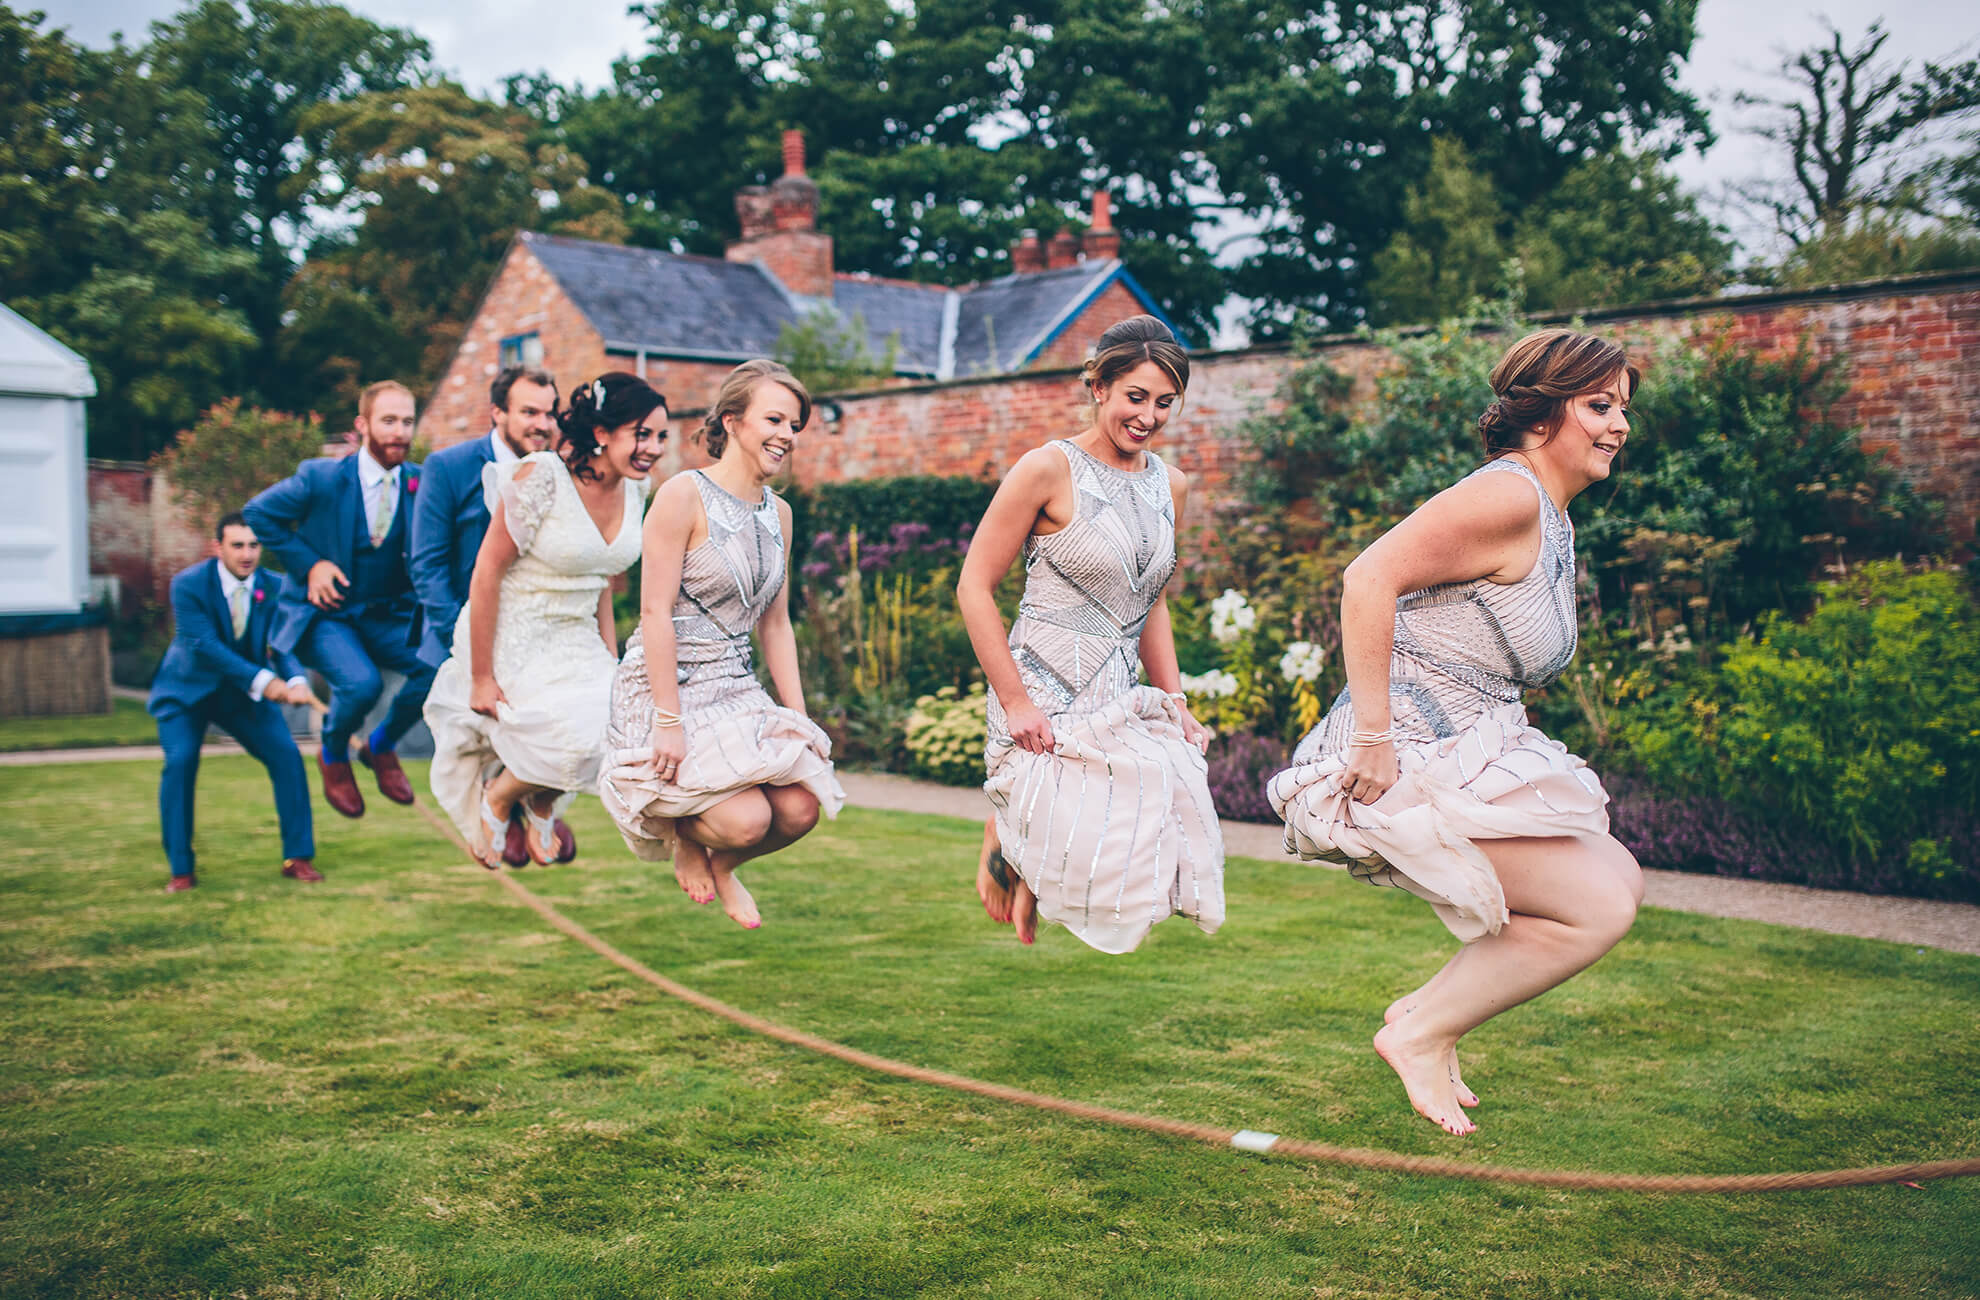 Outdoor weddings lawn games at Combermere Abbey, Cheshire